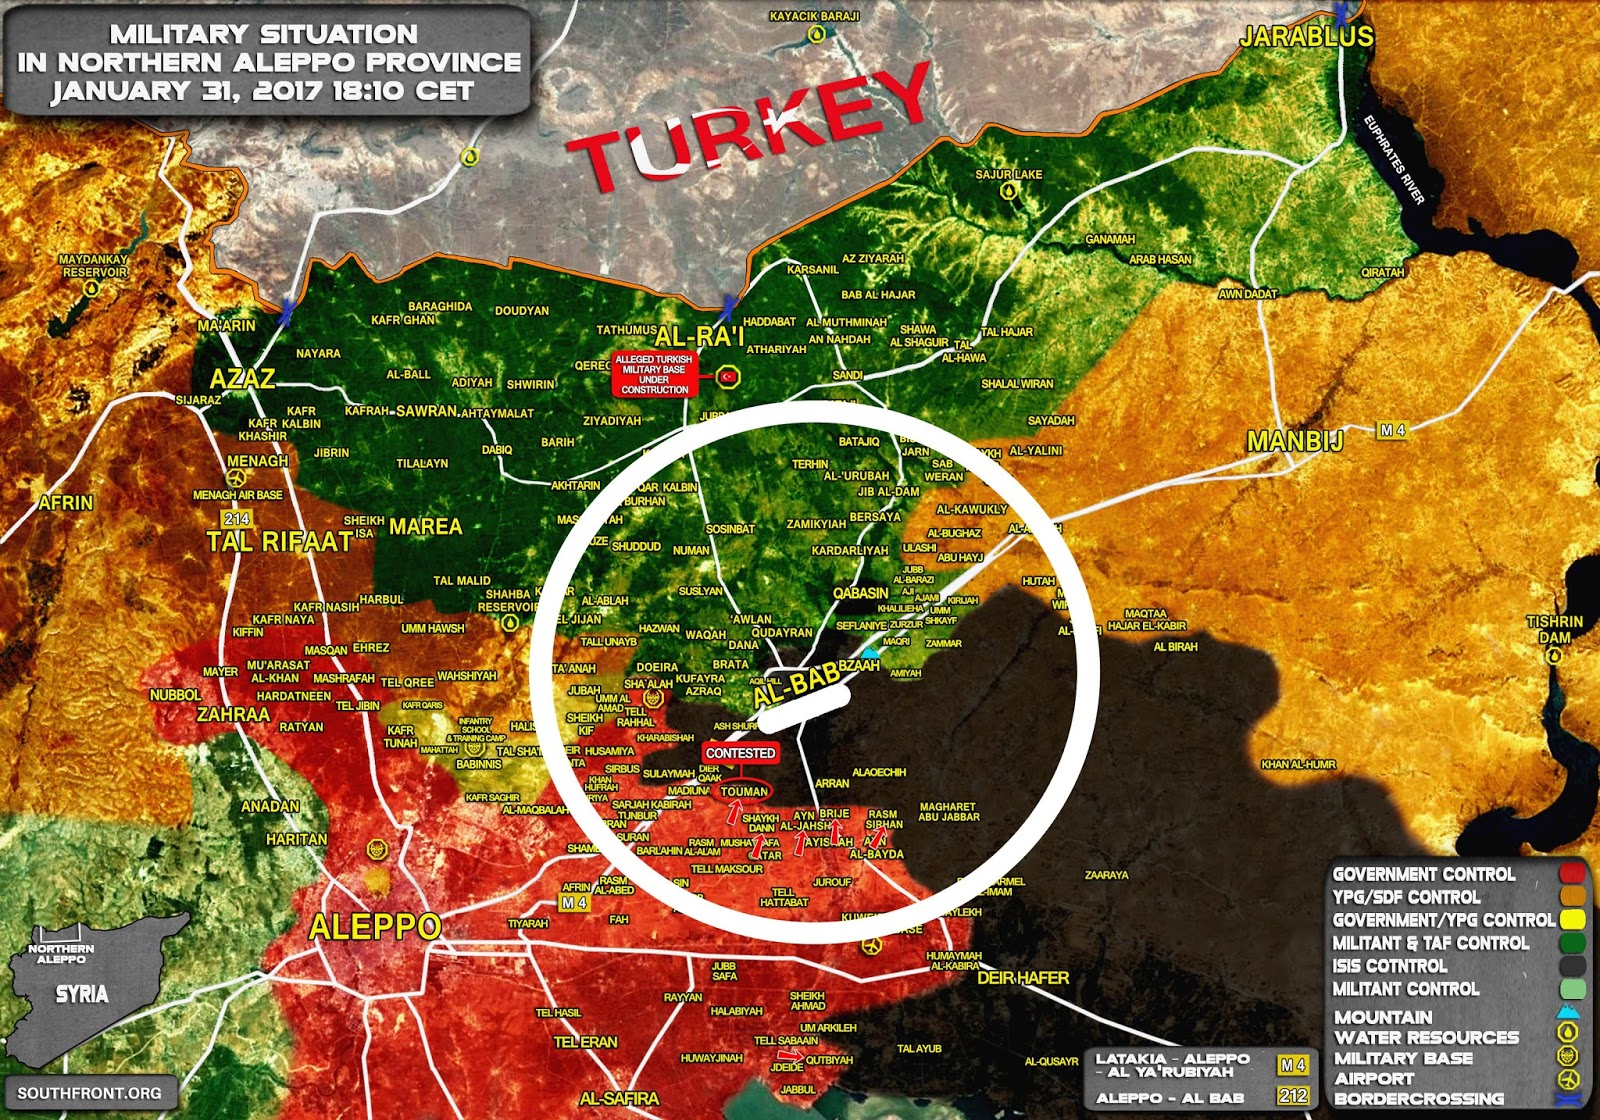 black isis red syrian regime green fsa orange sdf click on image for larger view